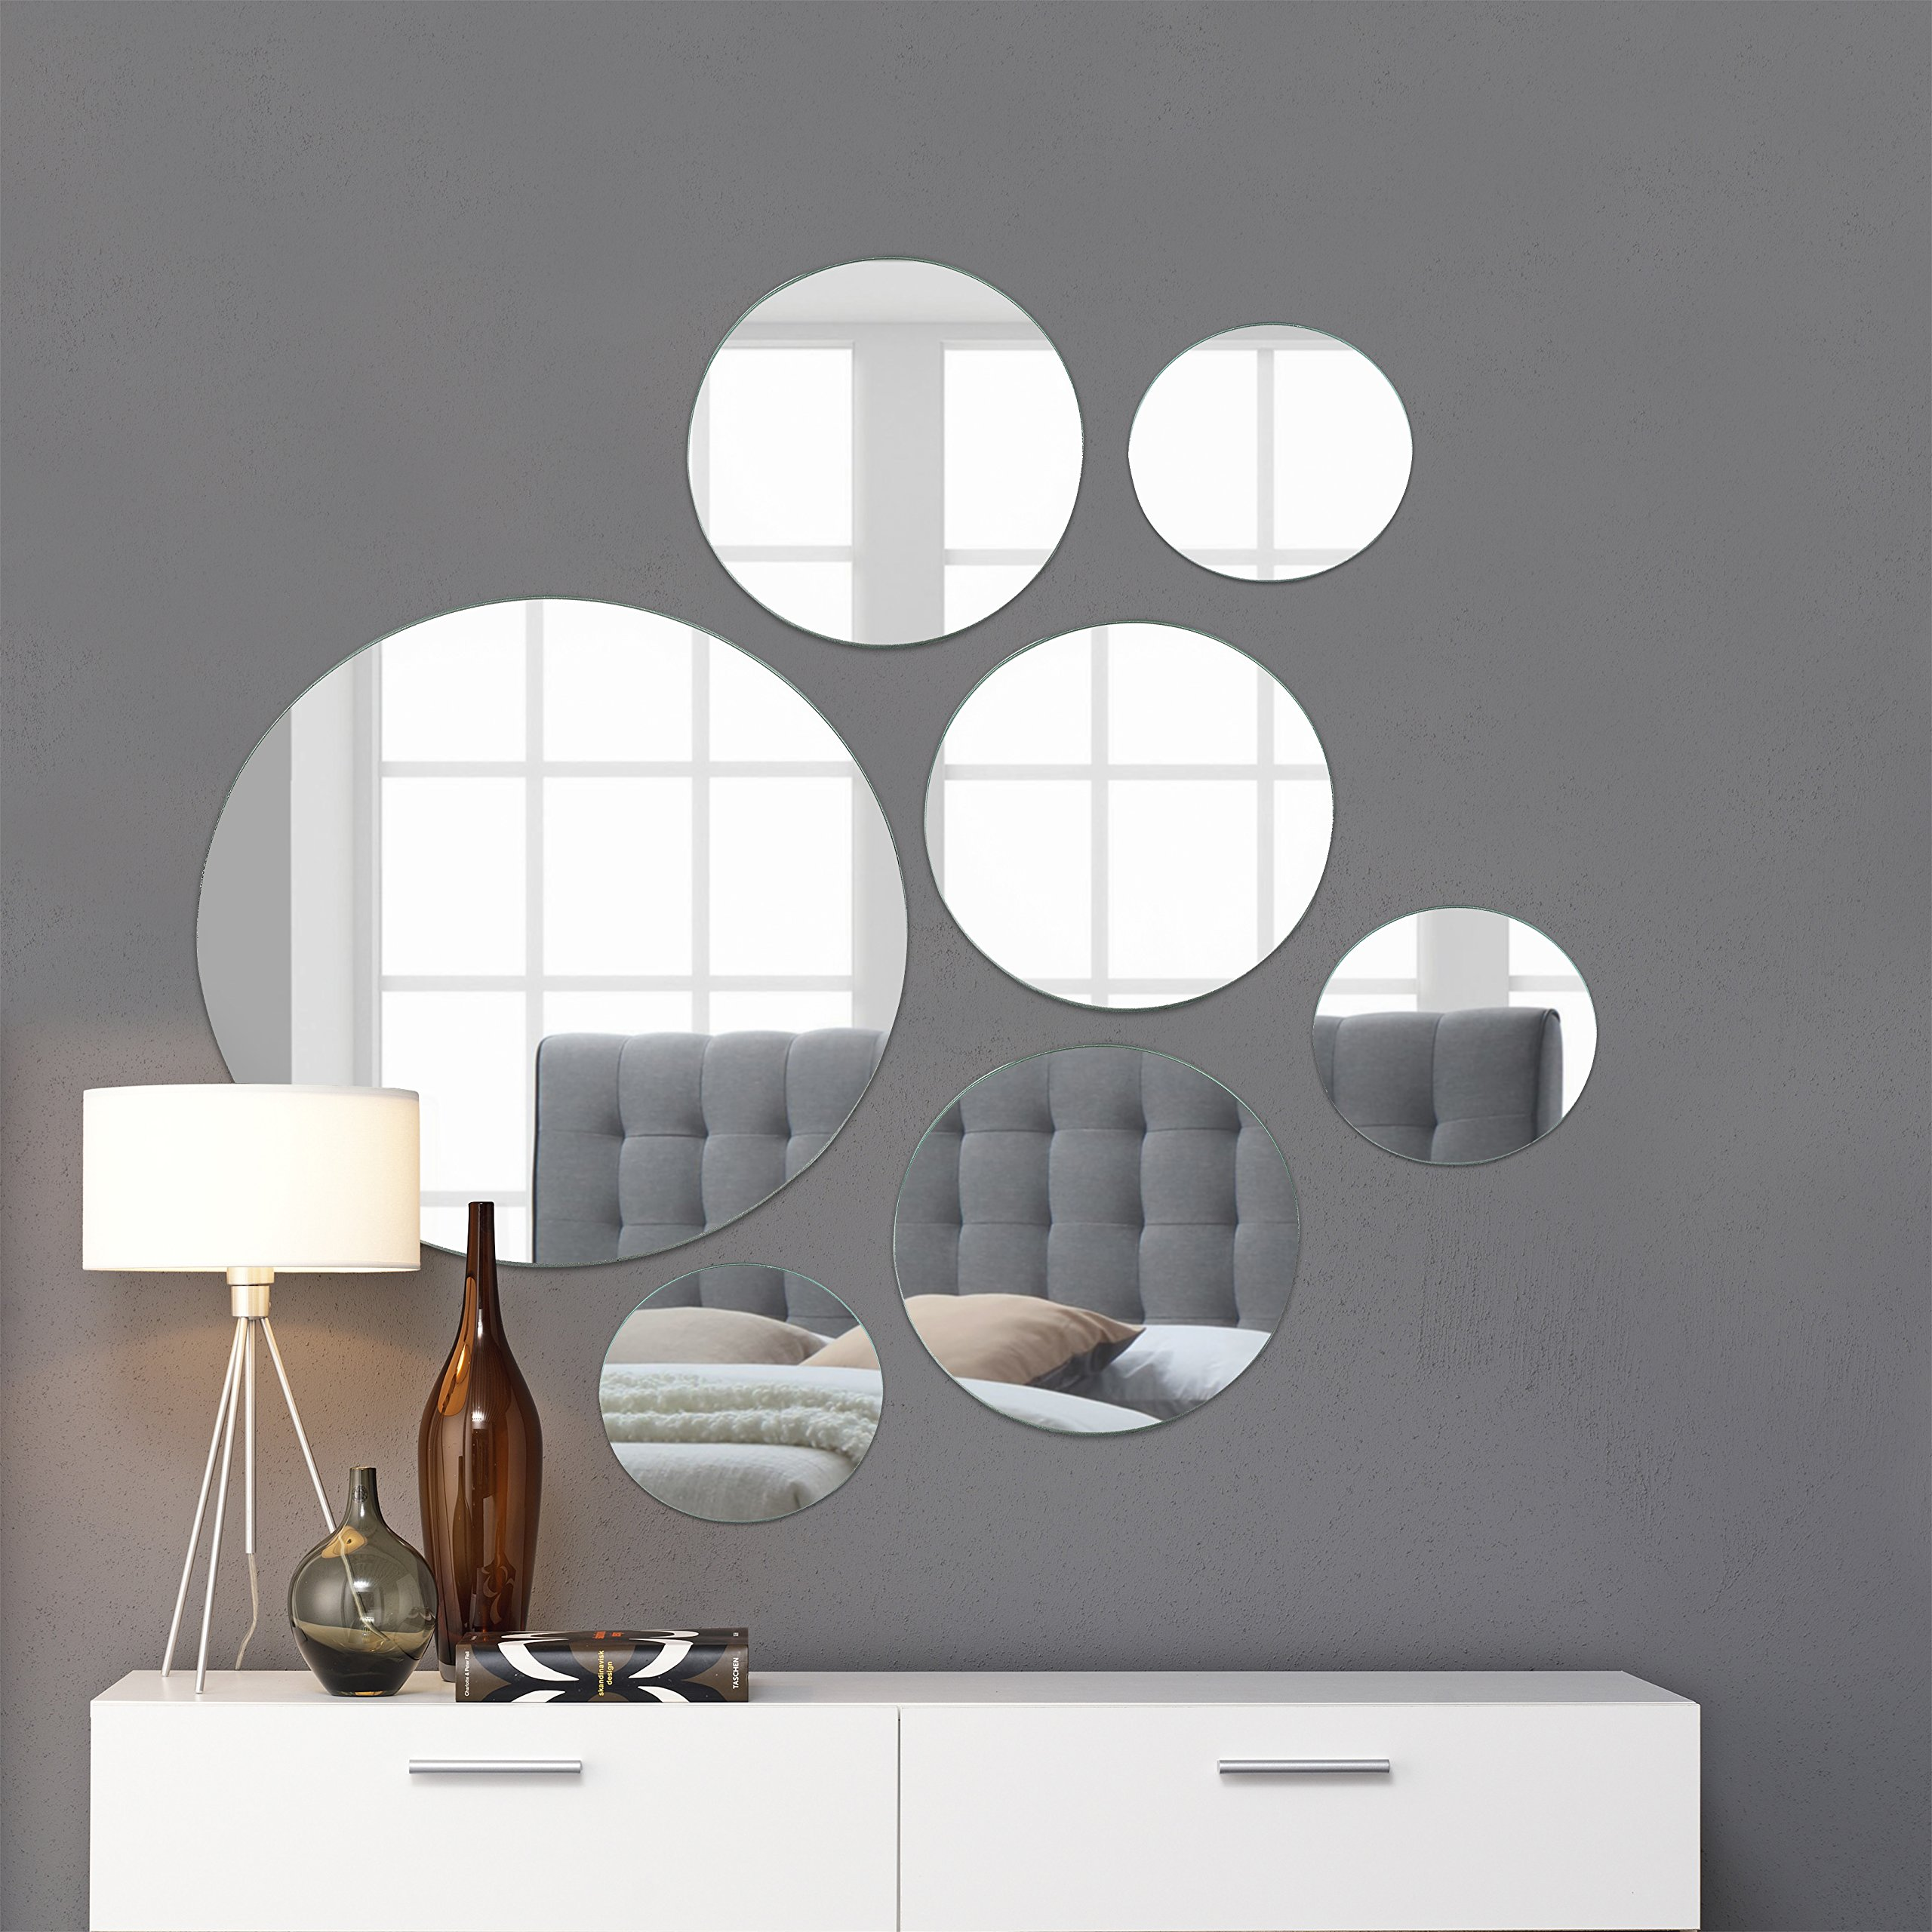 Light In the Dark Round Wall Mirror Mounted Assorted Sizes,1 large 10'', 3 Medium 7'', 3 Small 4'',Set of 7 by Light In the Dark